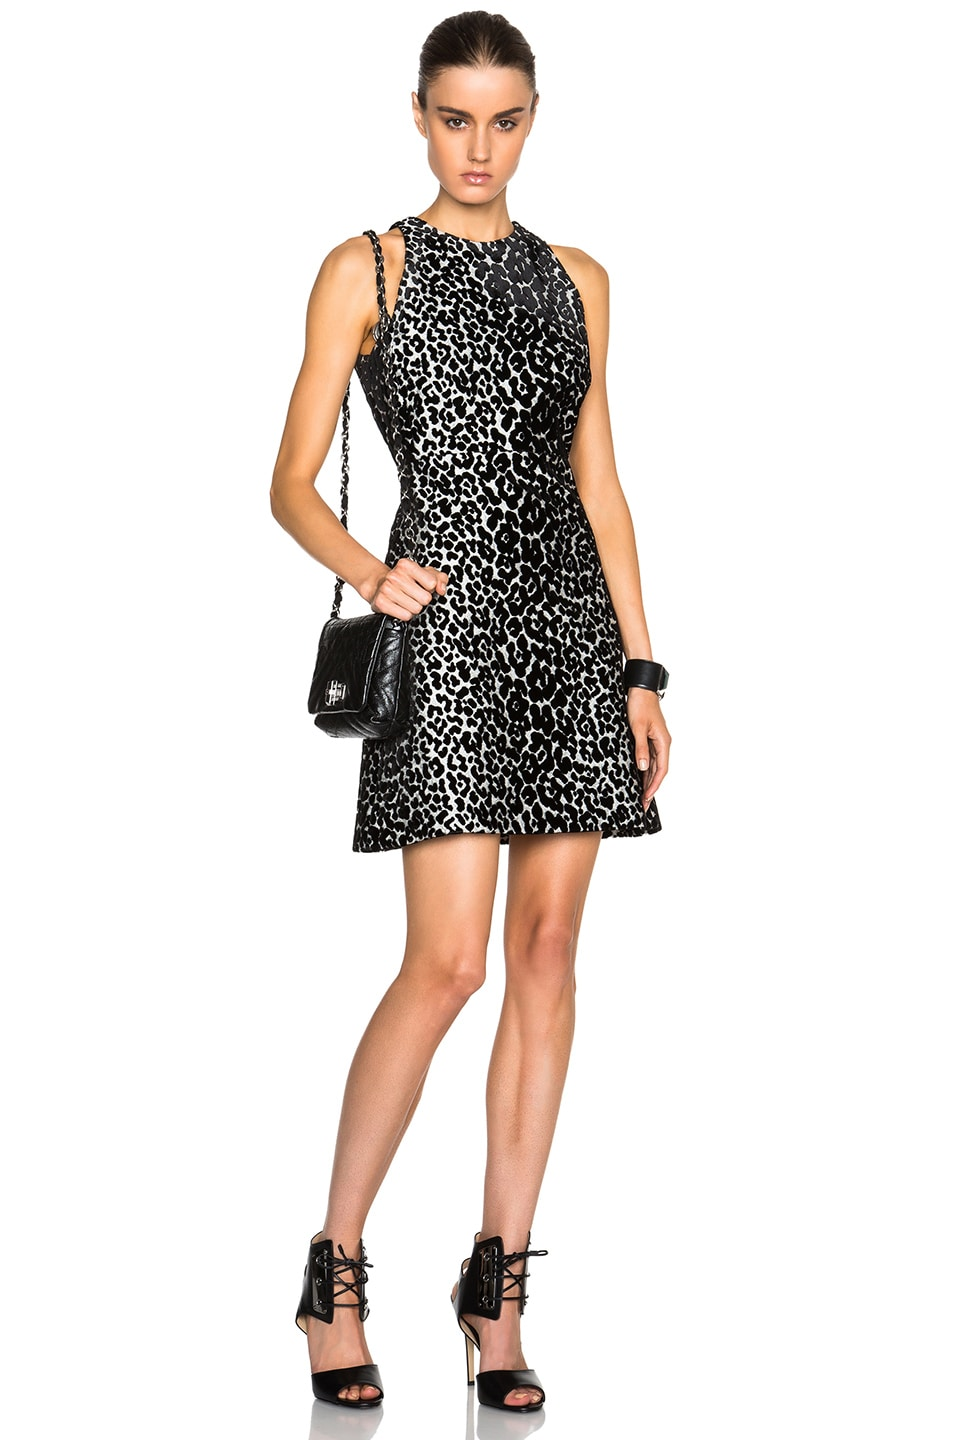 Giambattista Valli Jacquard Leopard Dress in Black,Animal Print